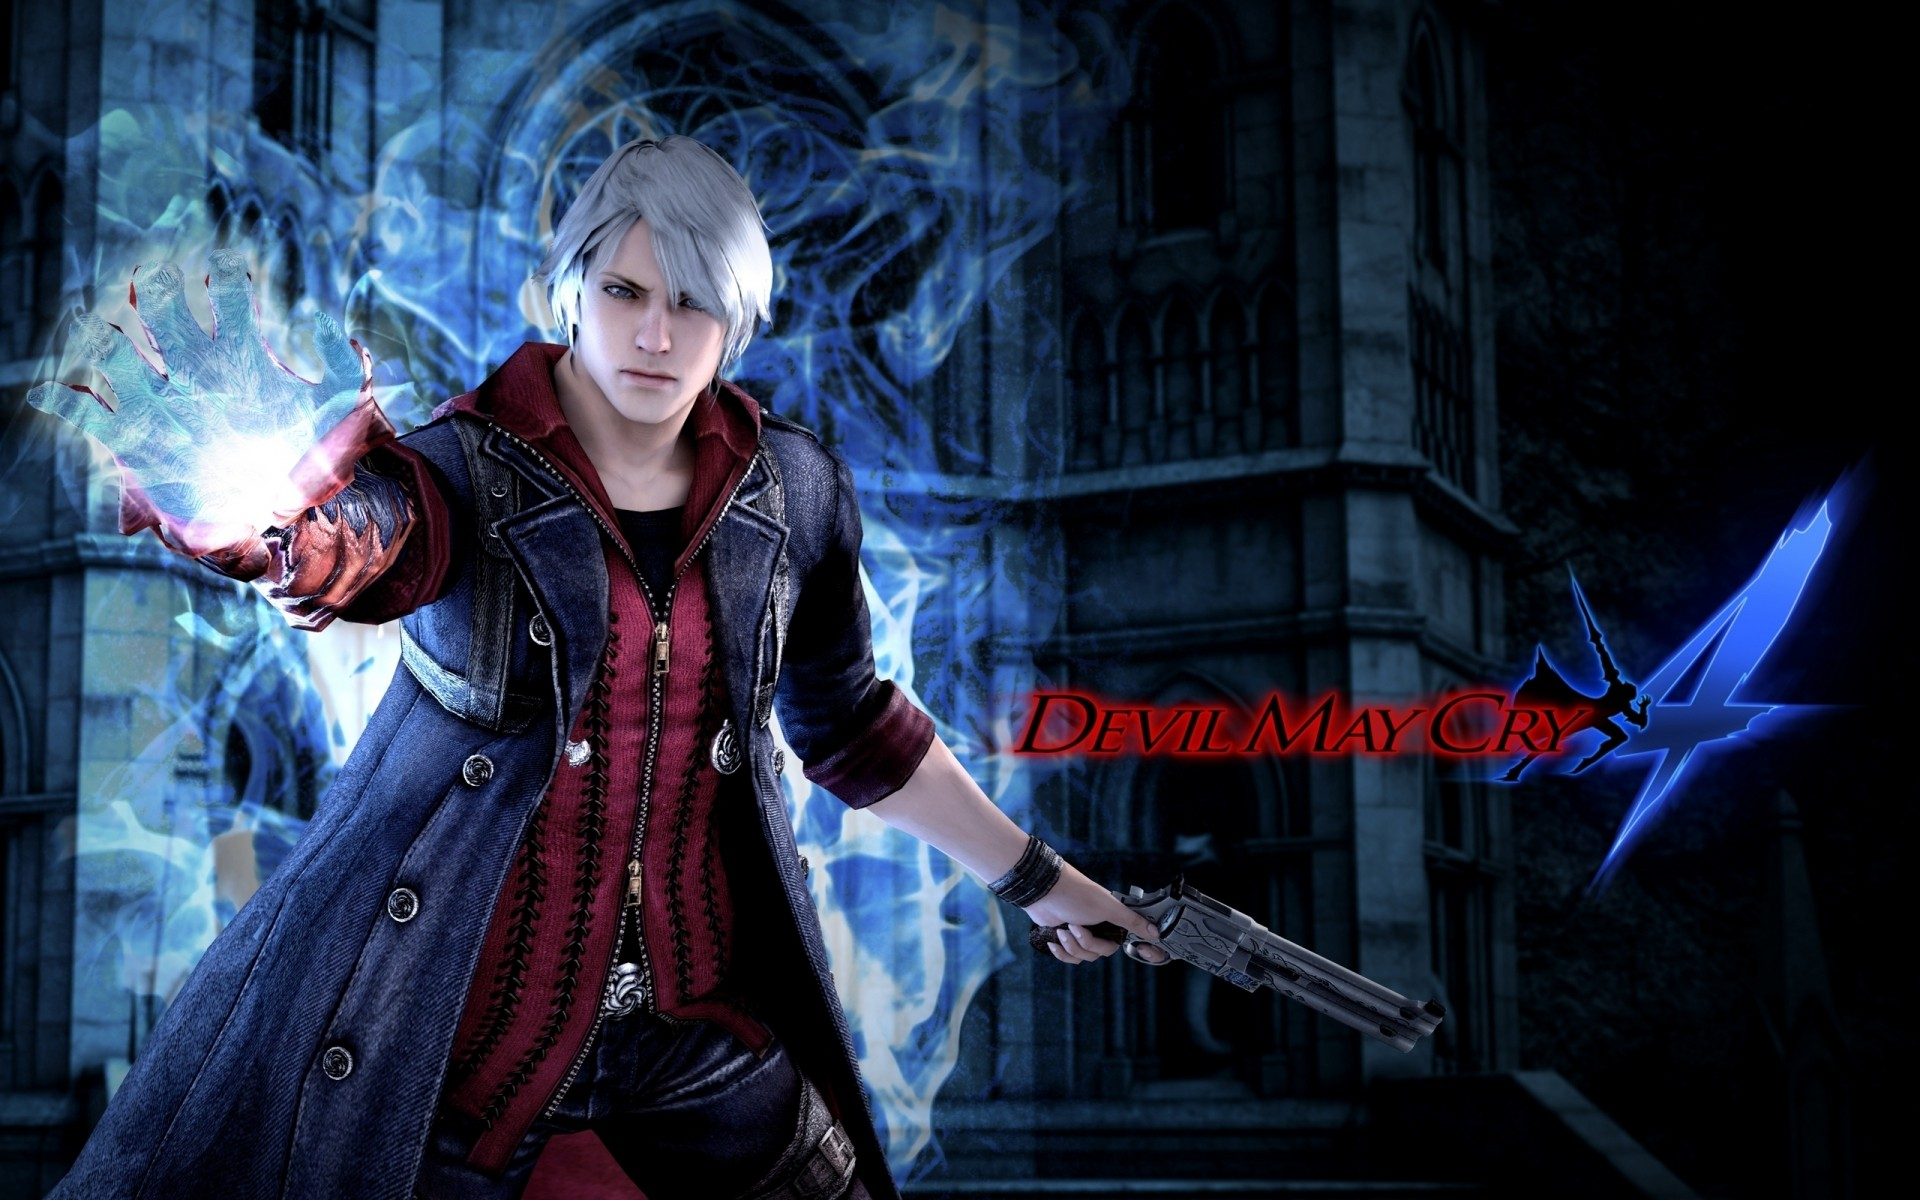 other games music performance musician concert festival singer dark devil may cry